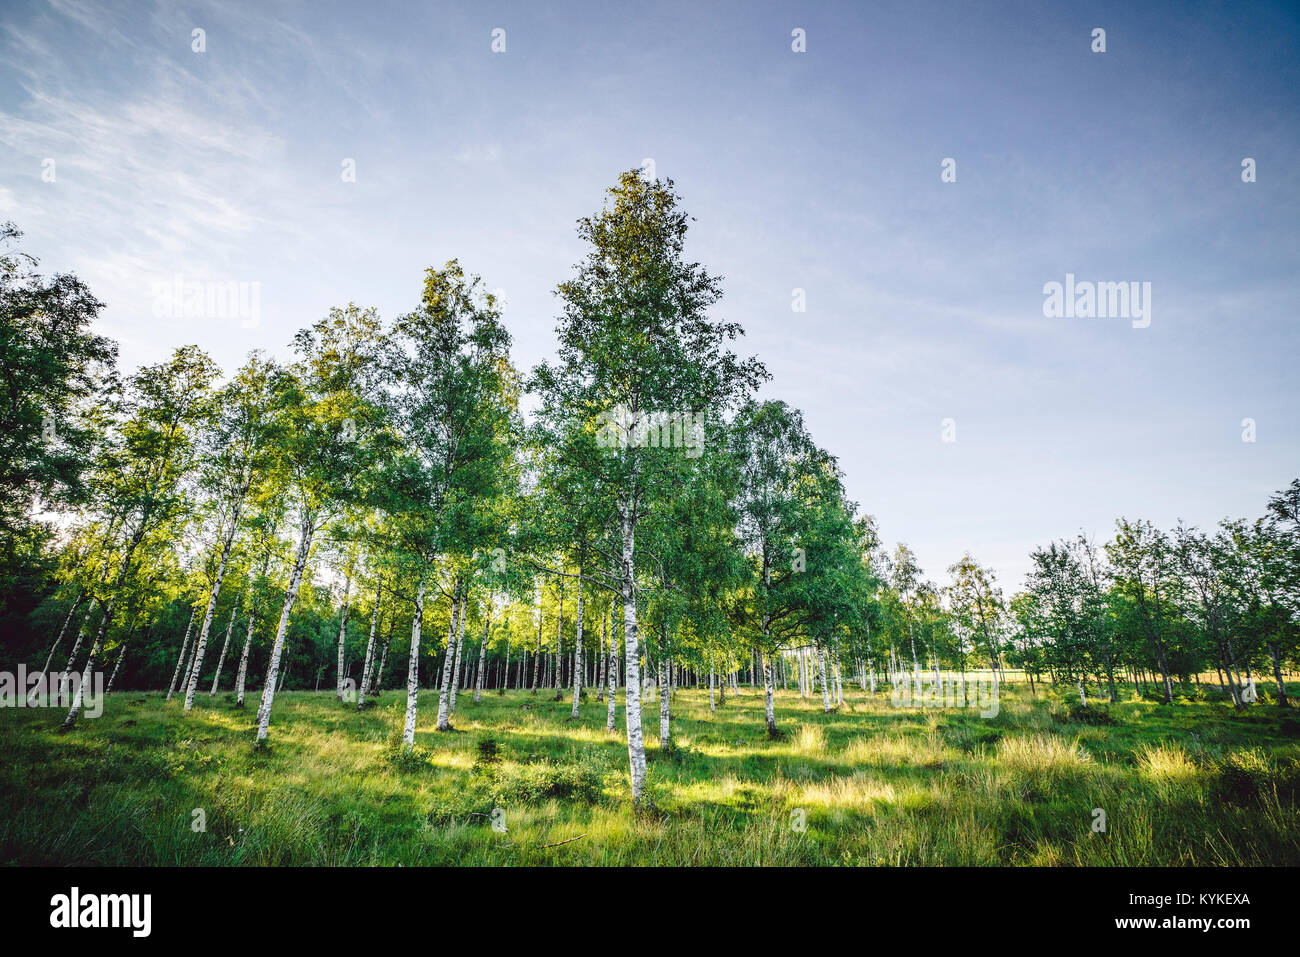 Birch trees on a green field in the spring in tall grass in the sunlight - Stock Image